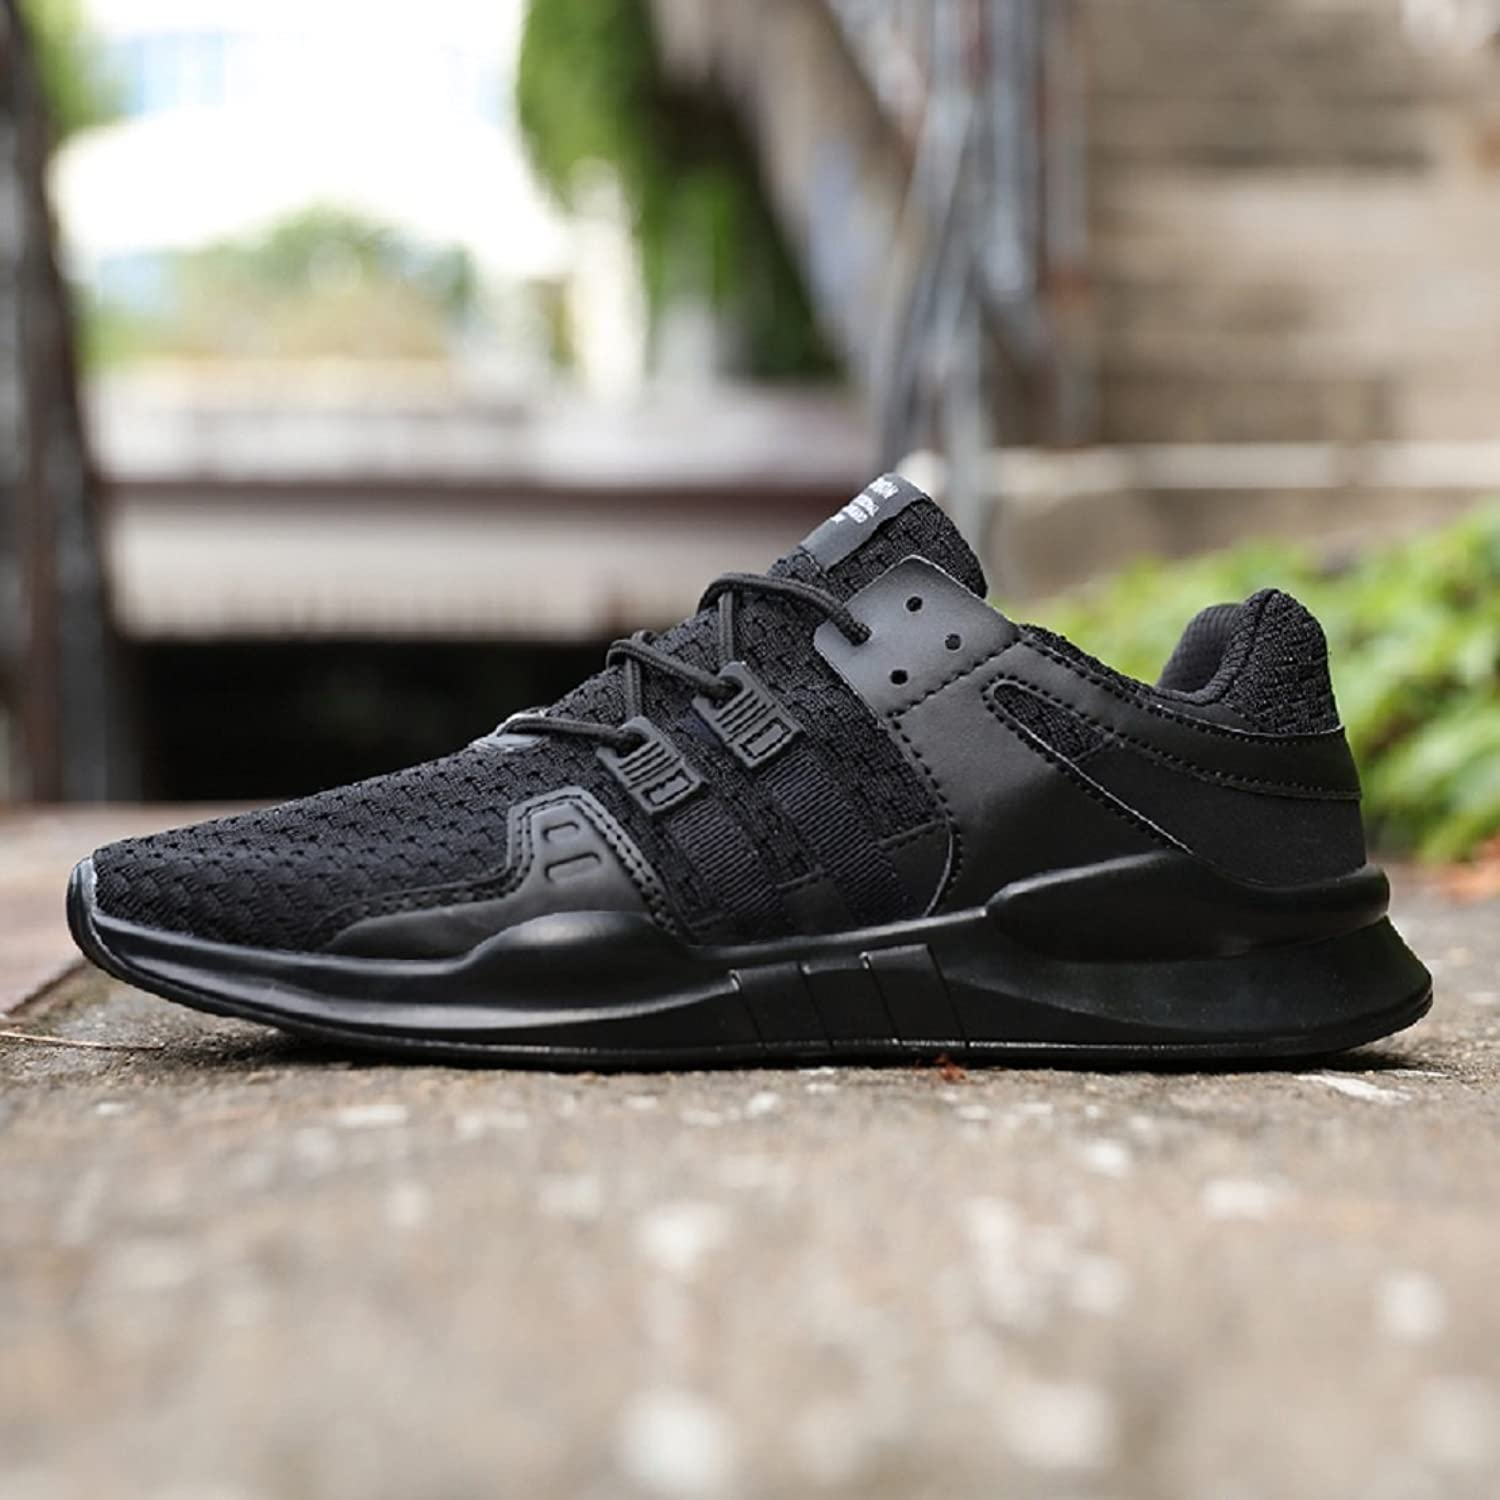 Mens Breathable Running Shoes Lightweight Casual Athletic Sneakers Sport  Walking Trial Homme Chaussure: Amazon.ca: Shoes & Handbags